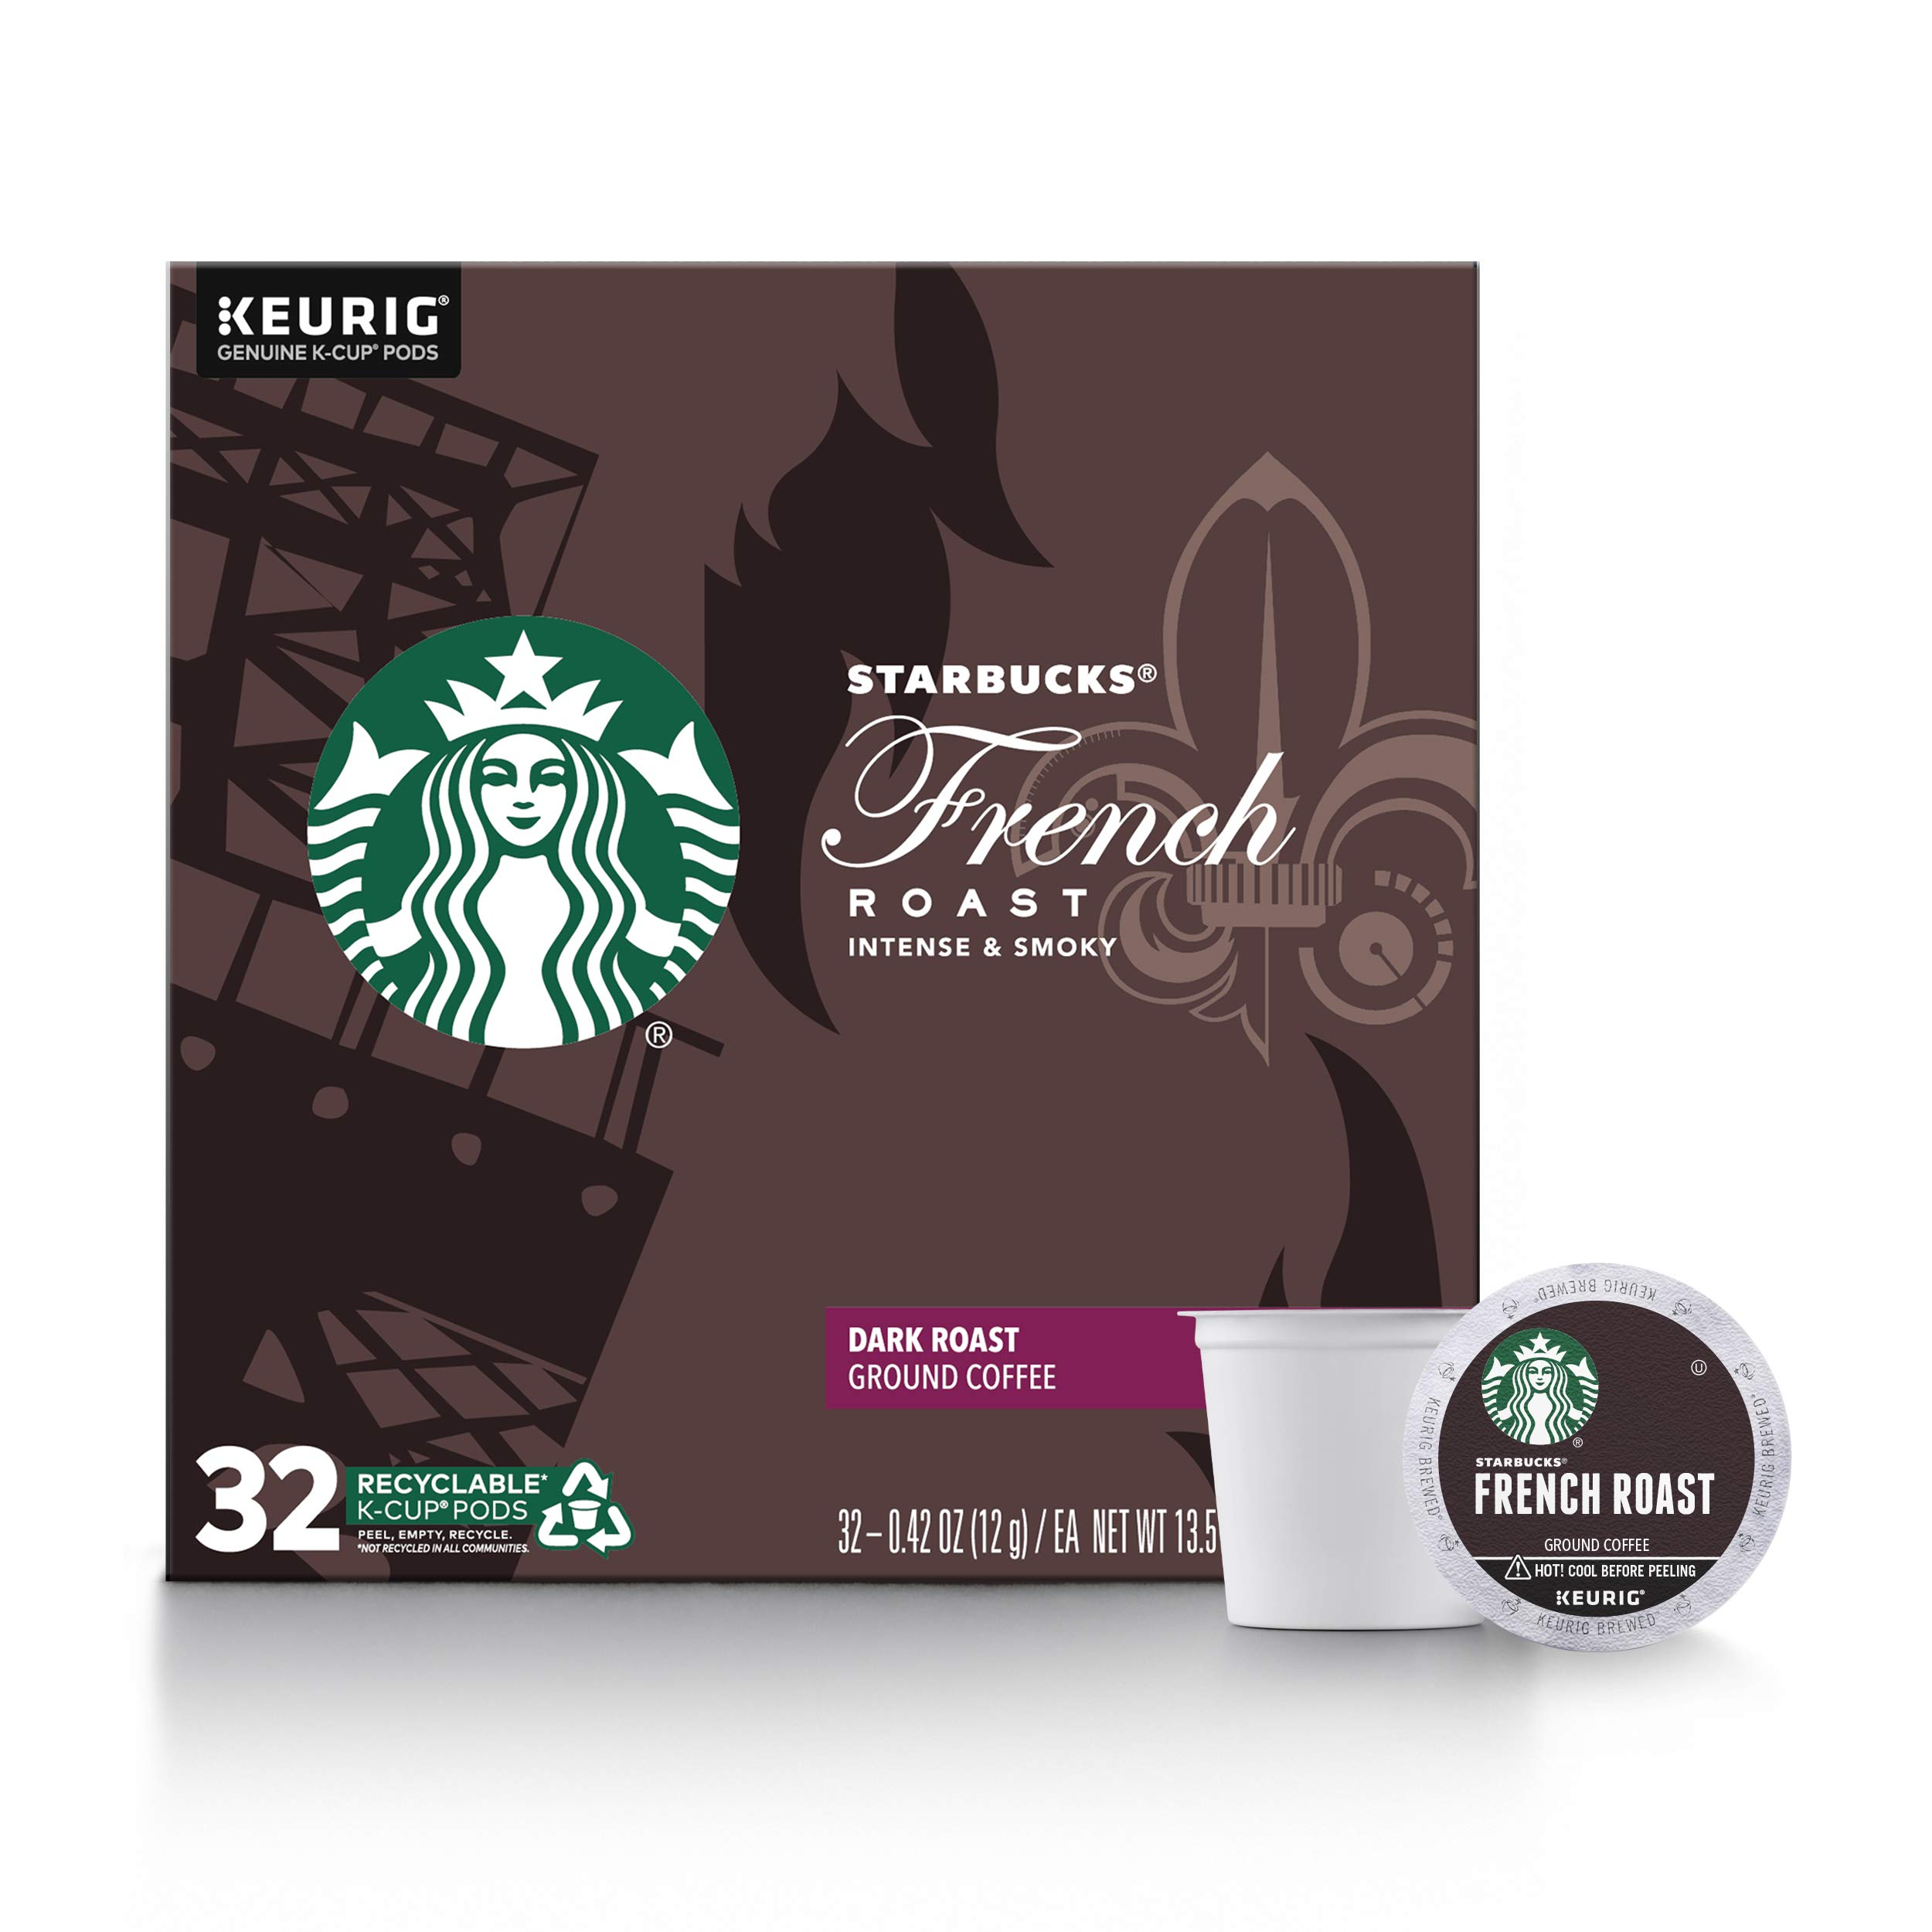 Starbucks Dark Roast K-Cup Coffee Pods — French Roast for Keurig Brewers — 1 box (32 pods)